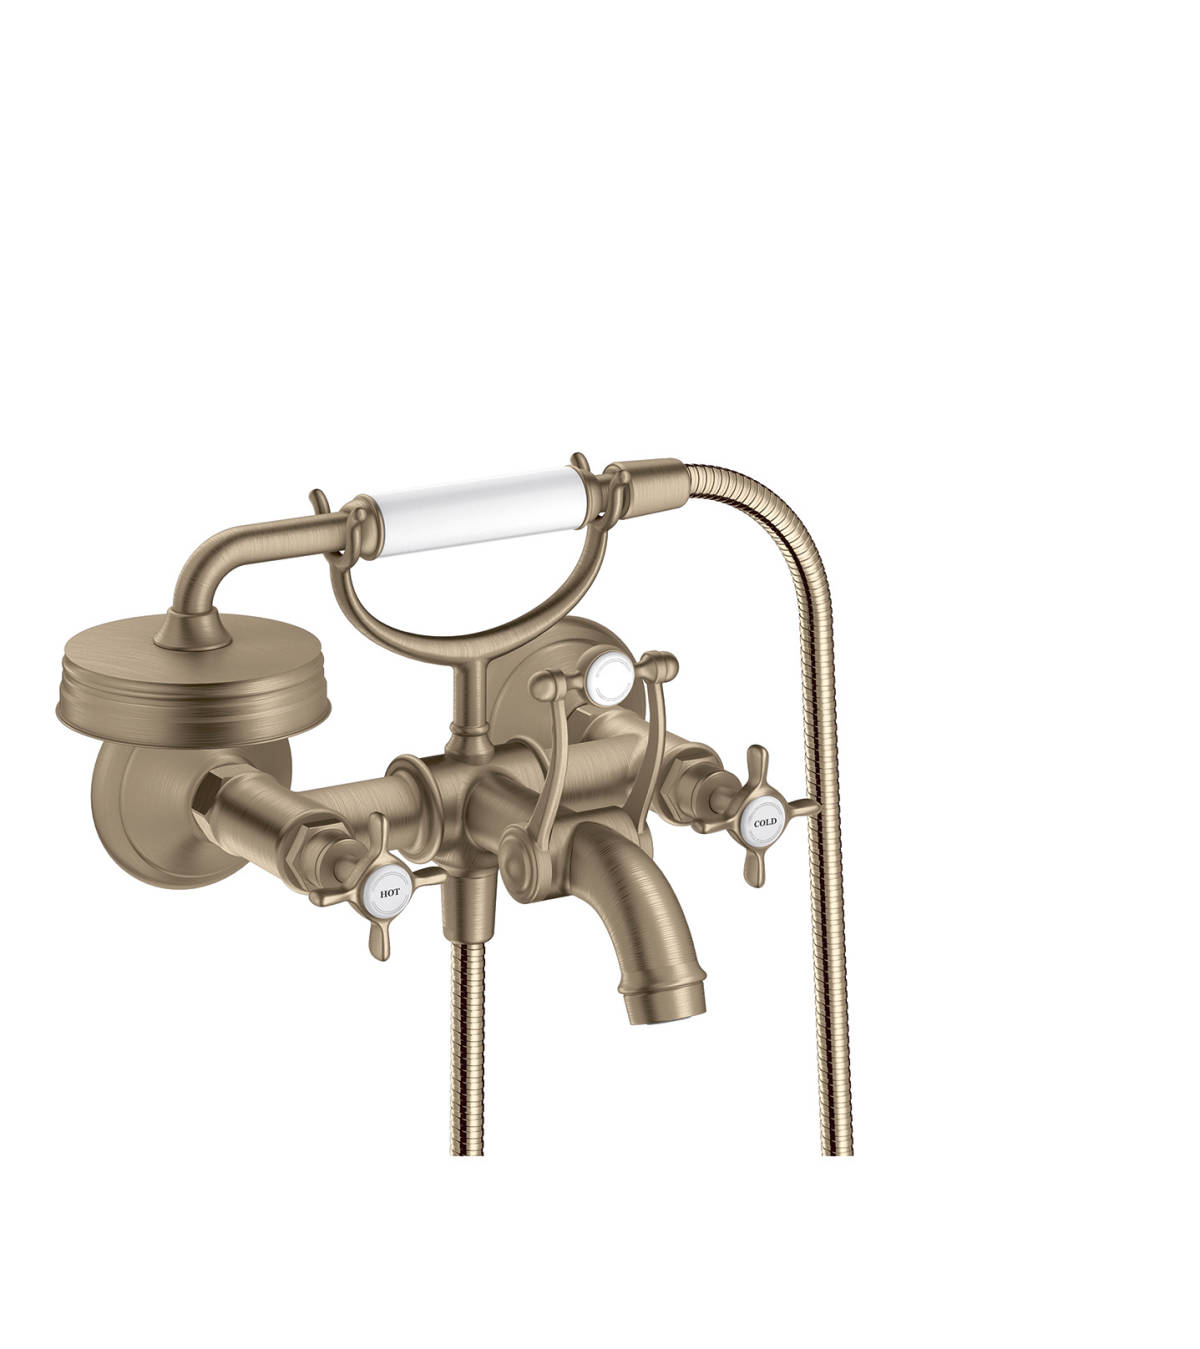 2-handle bath mixer for exposed installation with cross handles, Brushed Nickel, 16540820